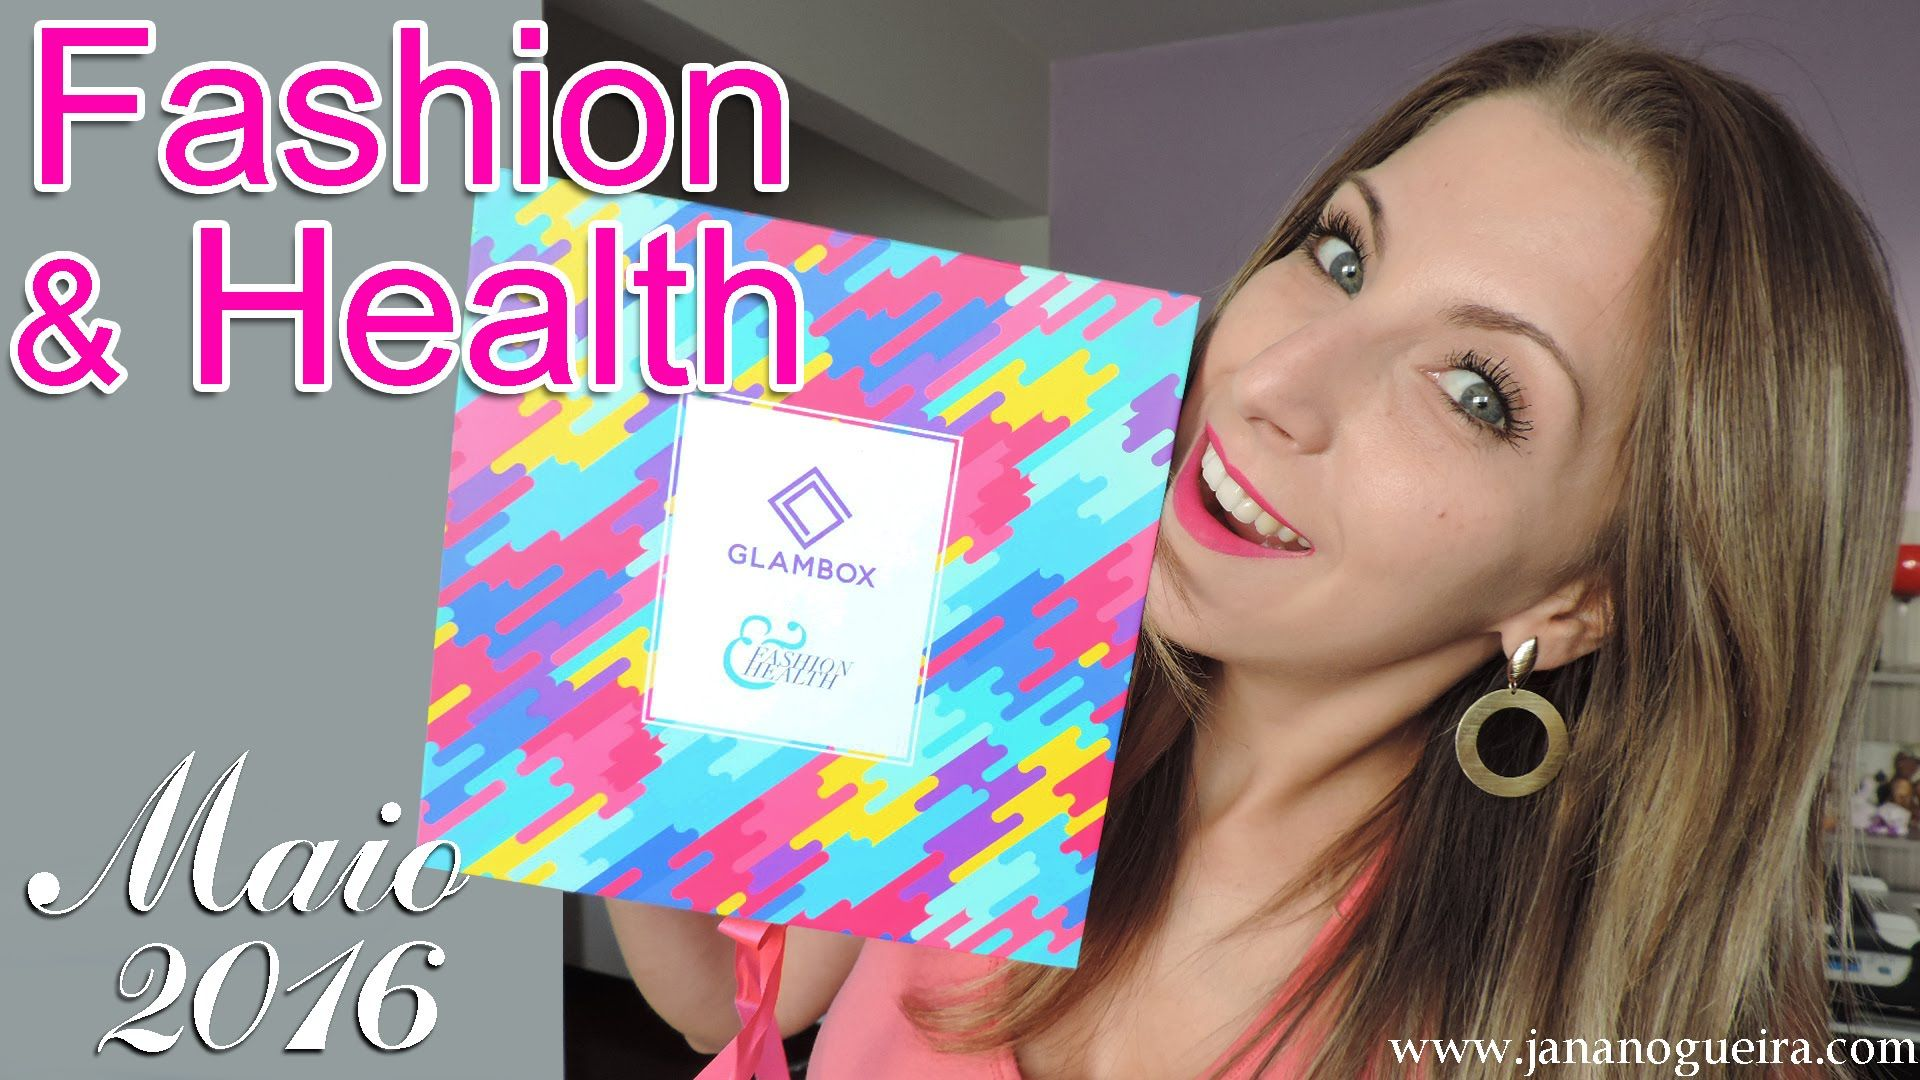 Glambox Maio 2016 - Fashion & Health